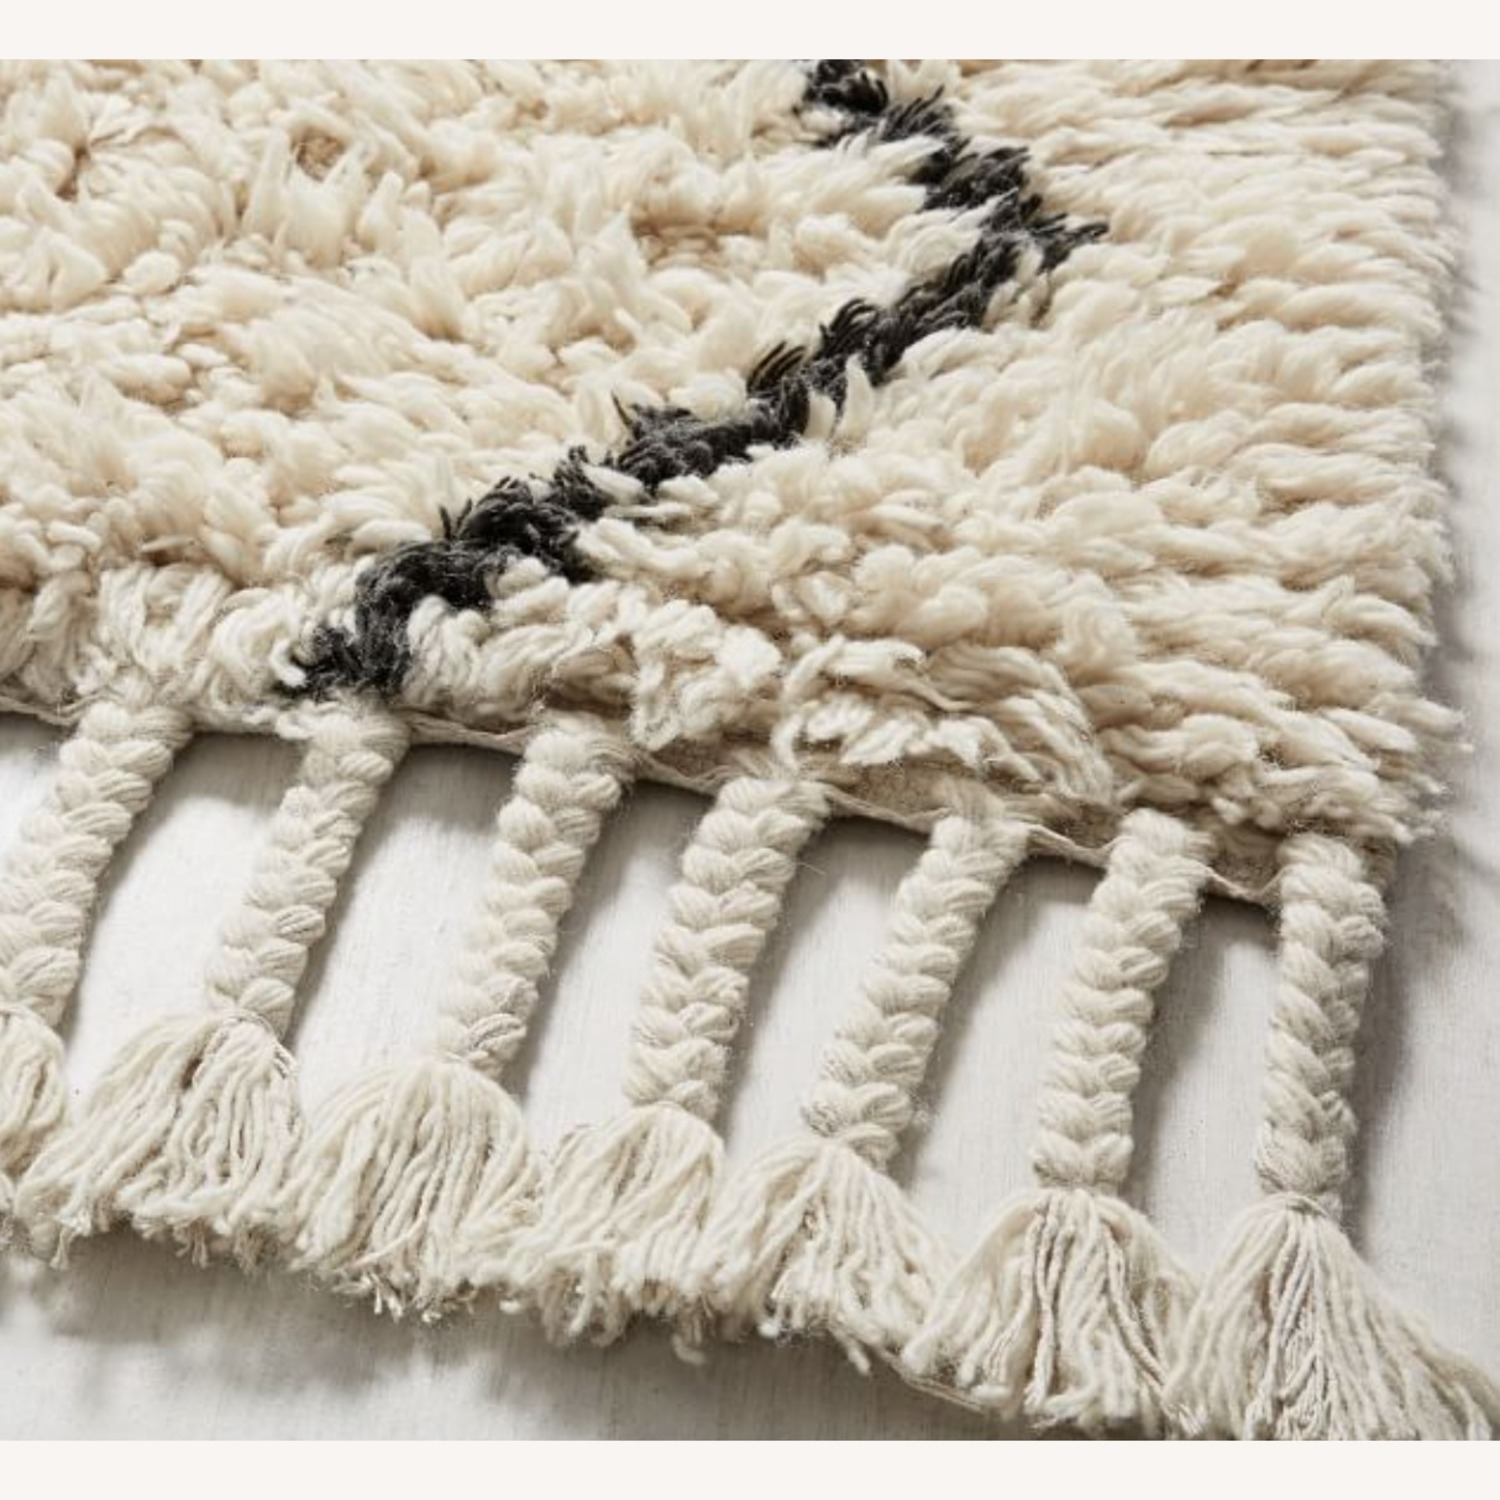 West Elm Wool Souk Rug 9x12 - image-3